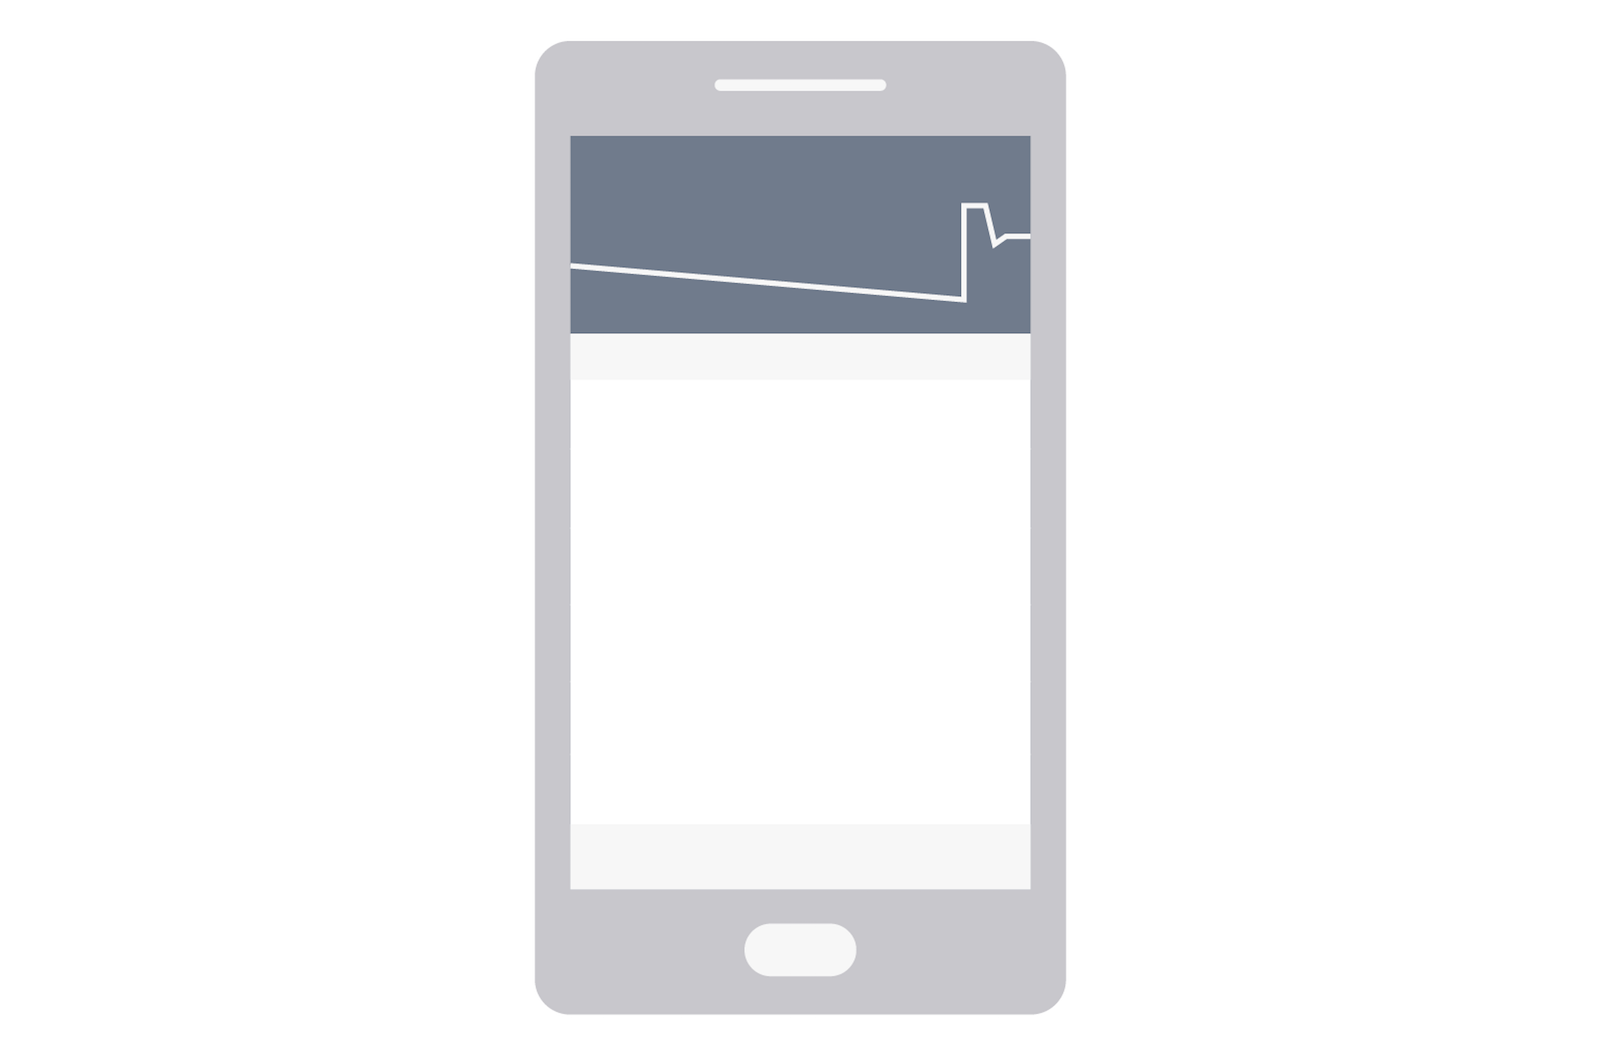 Illustration of the Monzo app